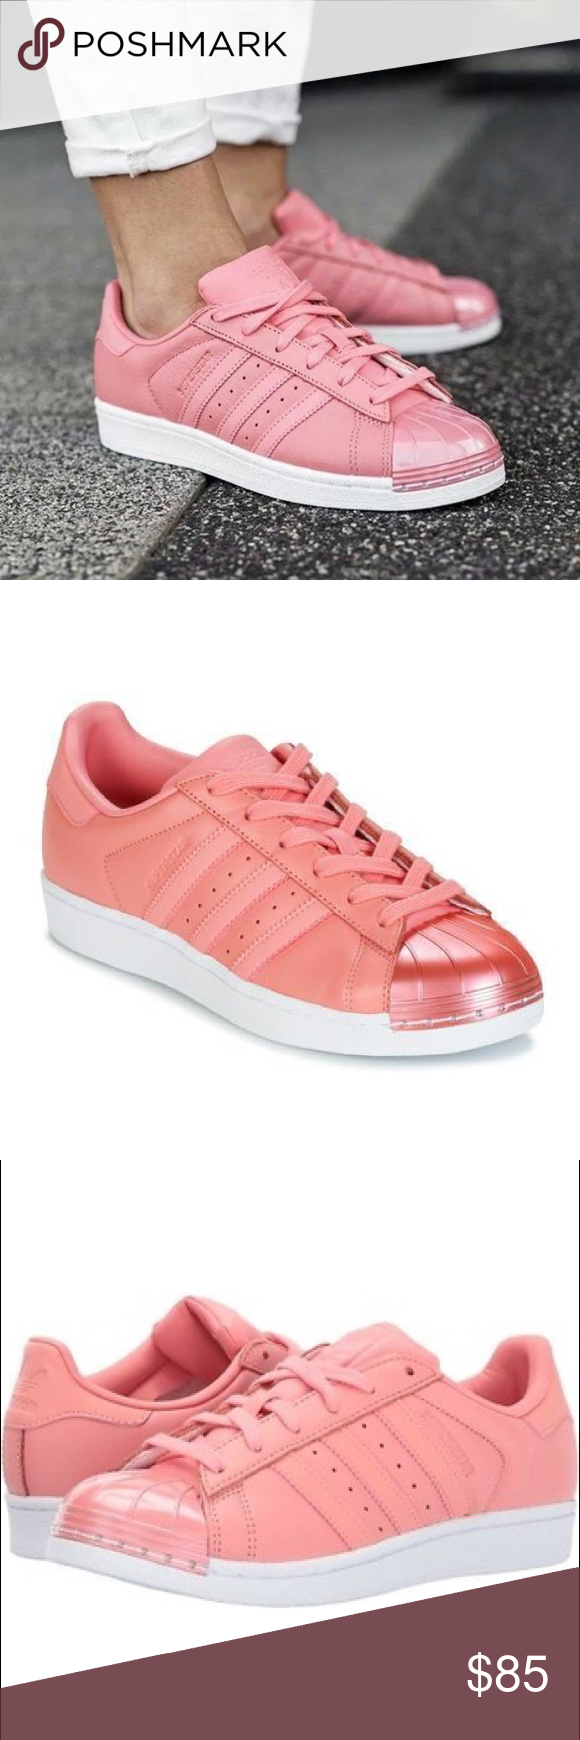 9466005e219f NEW Adidas Superstar Tactile Rose 80 s Sneakers New without box.  Basketball s first all-leather low top continues to ride in high style.  These women s shoes ...